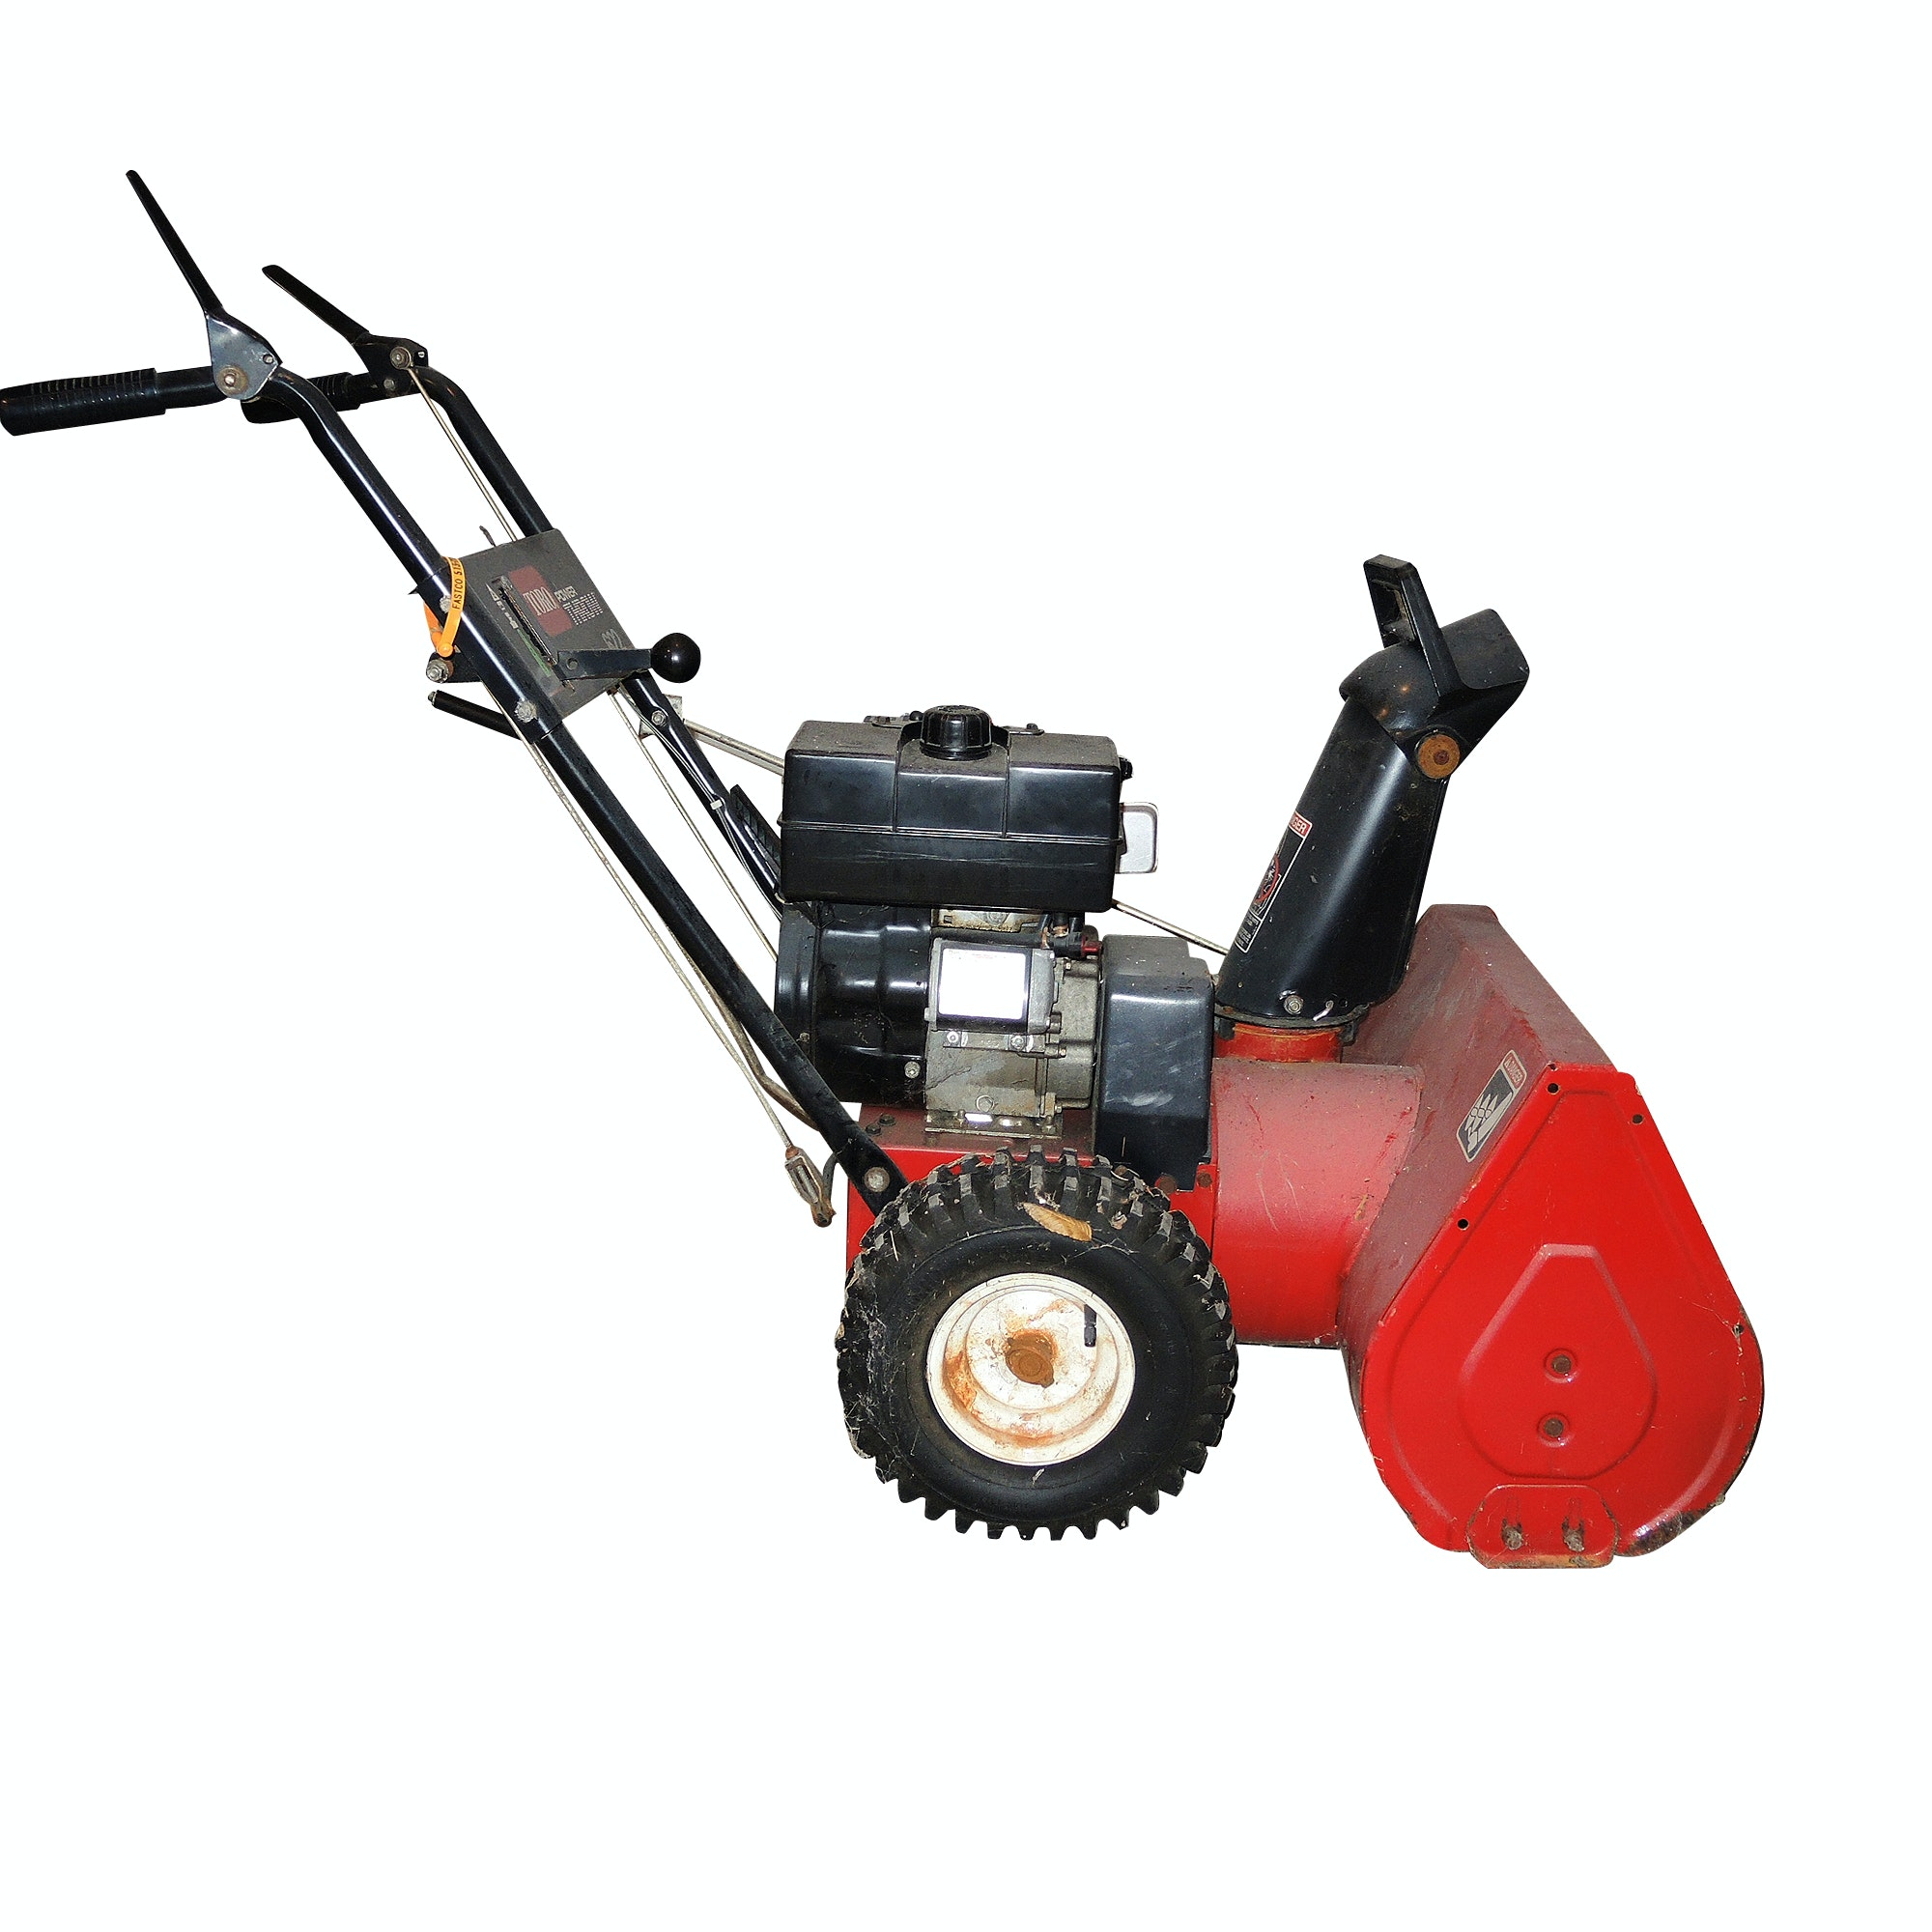 Toro Power Throw 622 Snow Blower